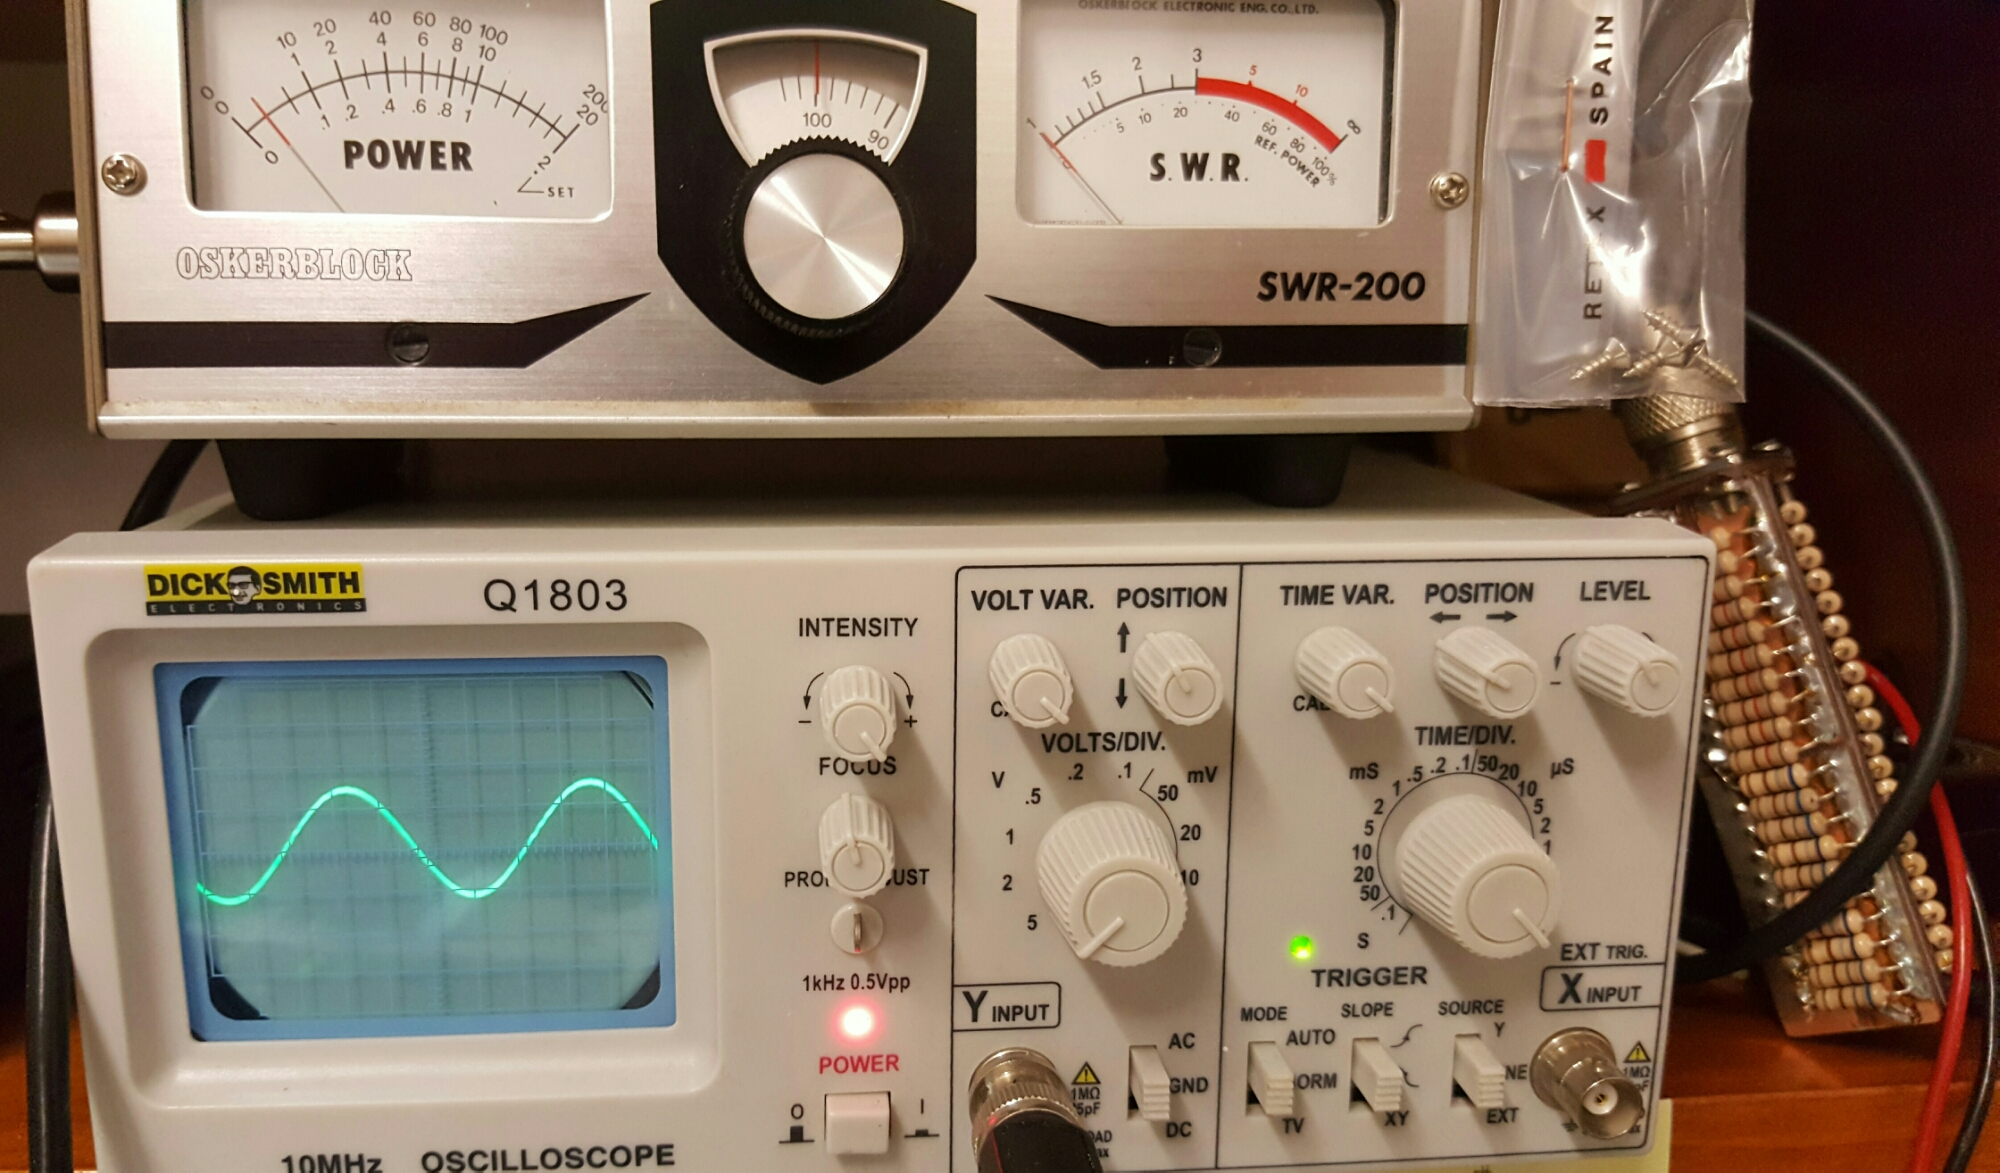 Homebrew 160 Meter Am Cw Transmitter Receiver Vk3hn Mk484 Radio Circuit Design Electronic Project The Trusty Oskerblock Shows A Bit Under 50 Watts Pa Current Was Sitting At 14 Amps On 33v Rail Watt Dummy Load Hot After 3 To 4 Seconds Of